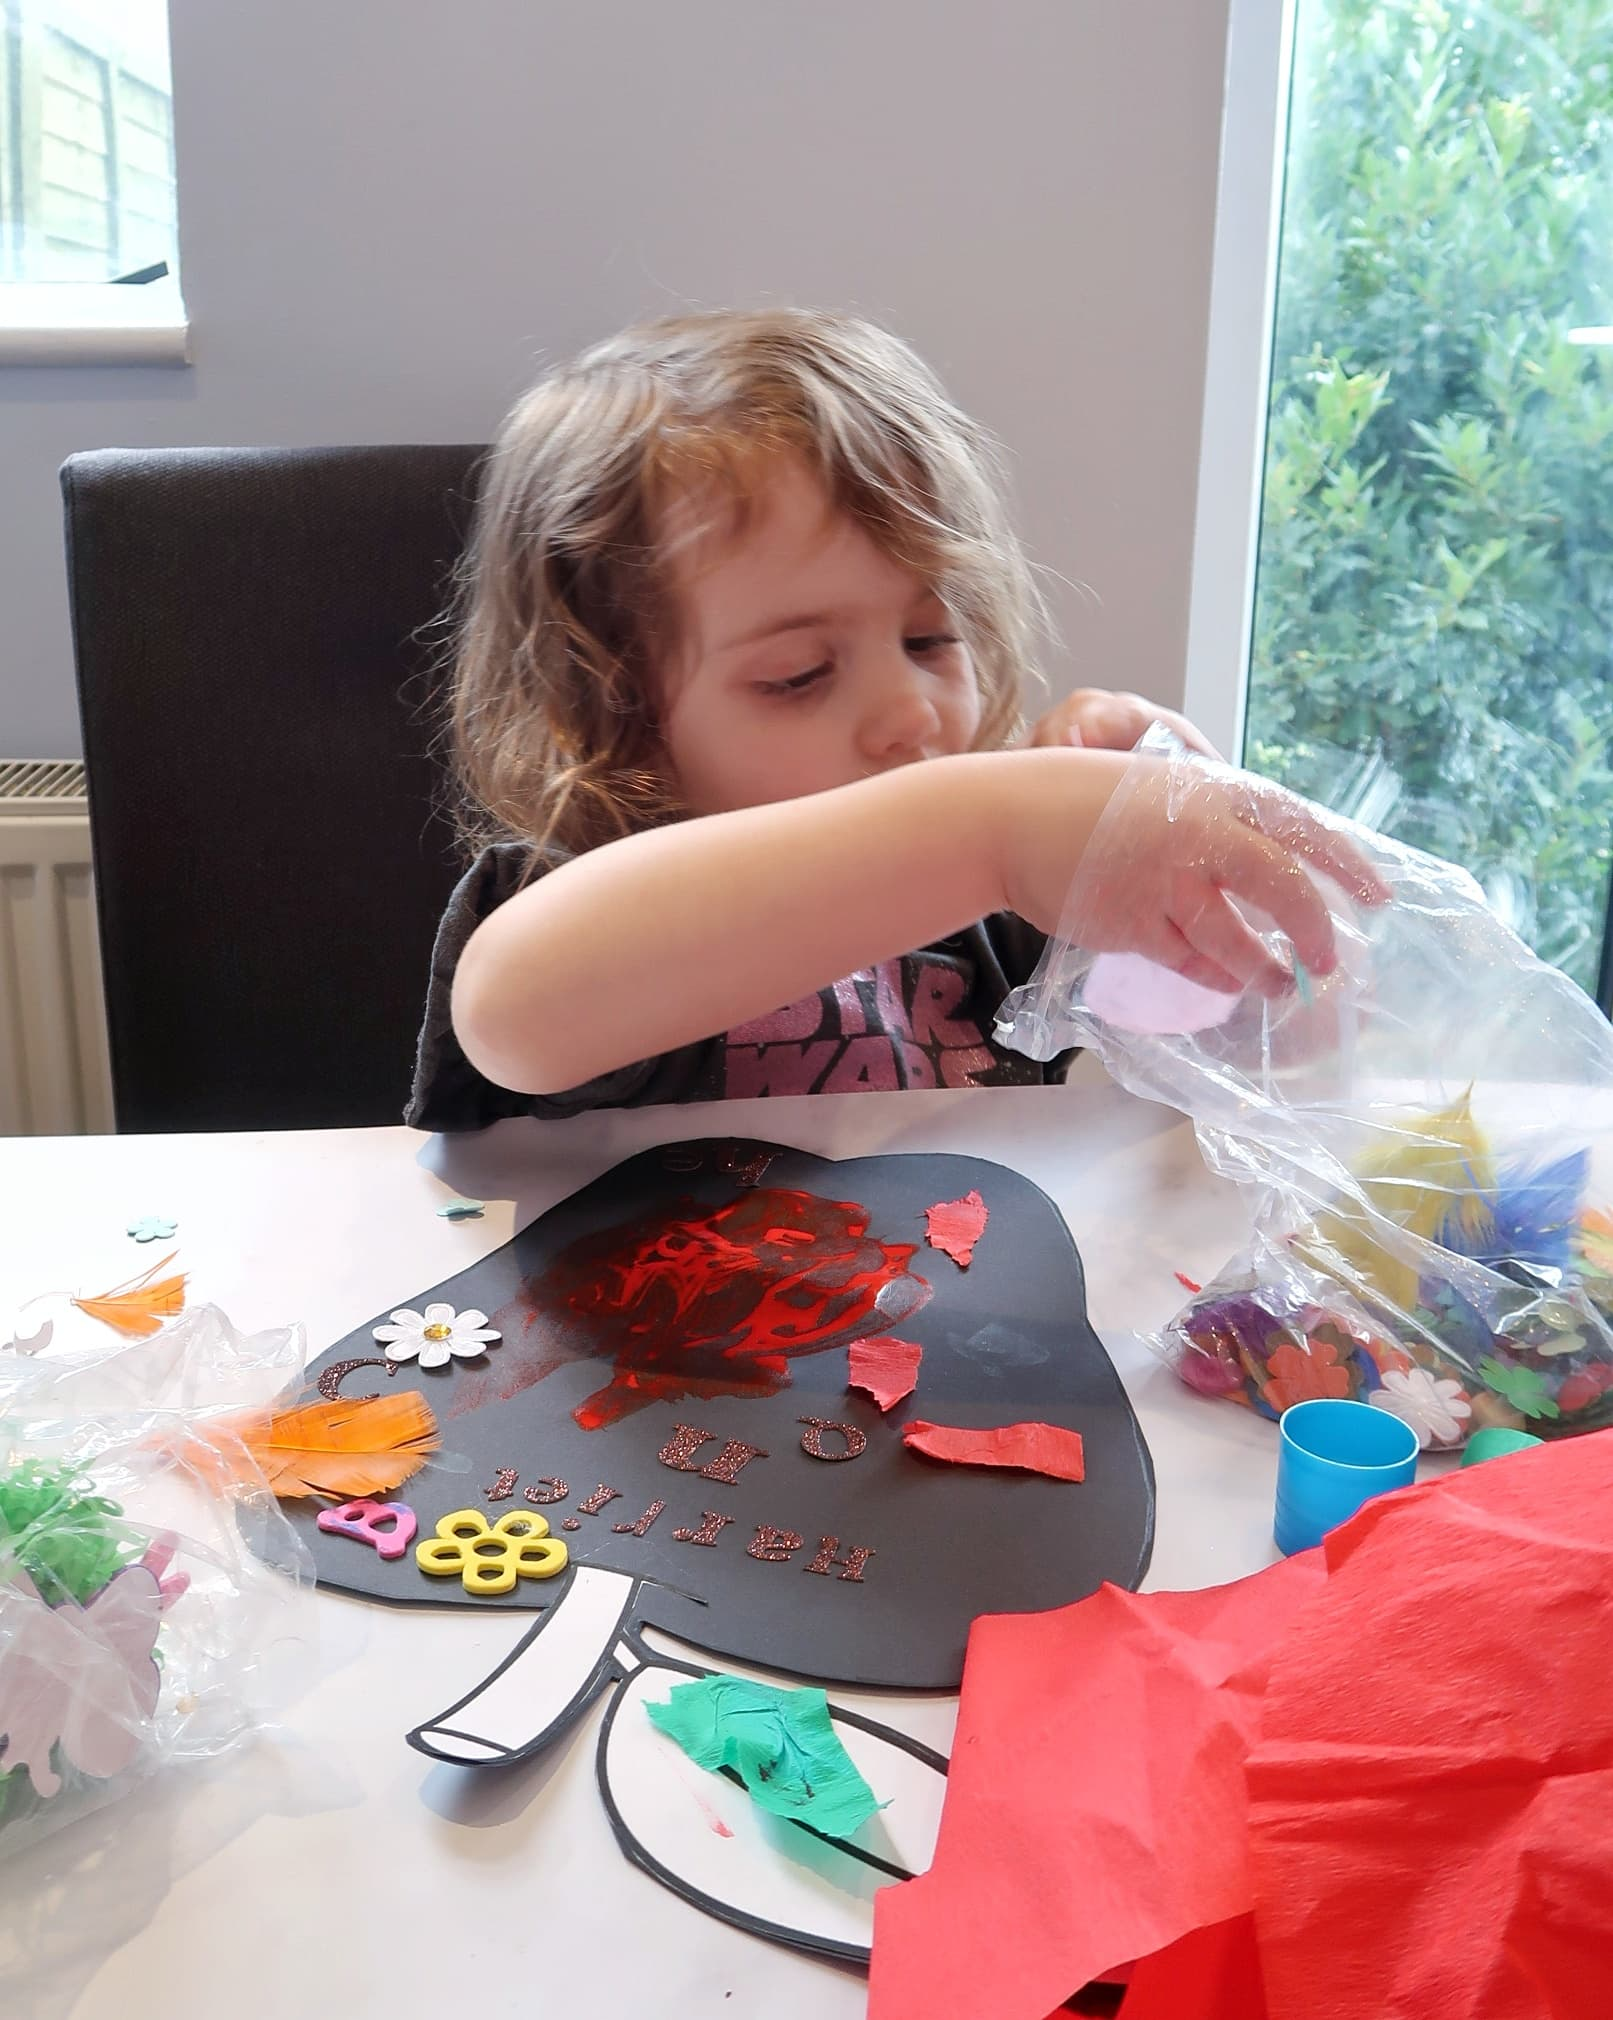 Small girl searching through a bag of letters and beads for back to school craft